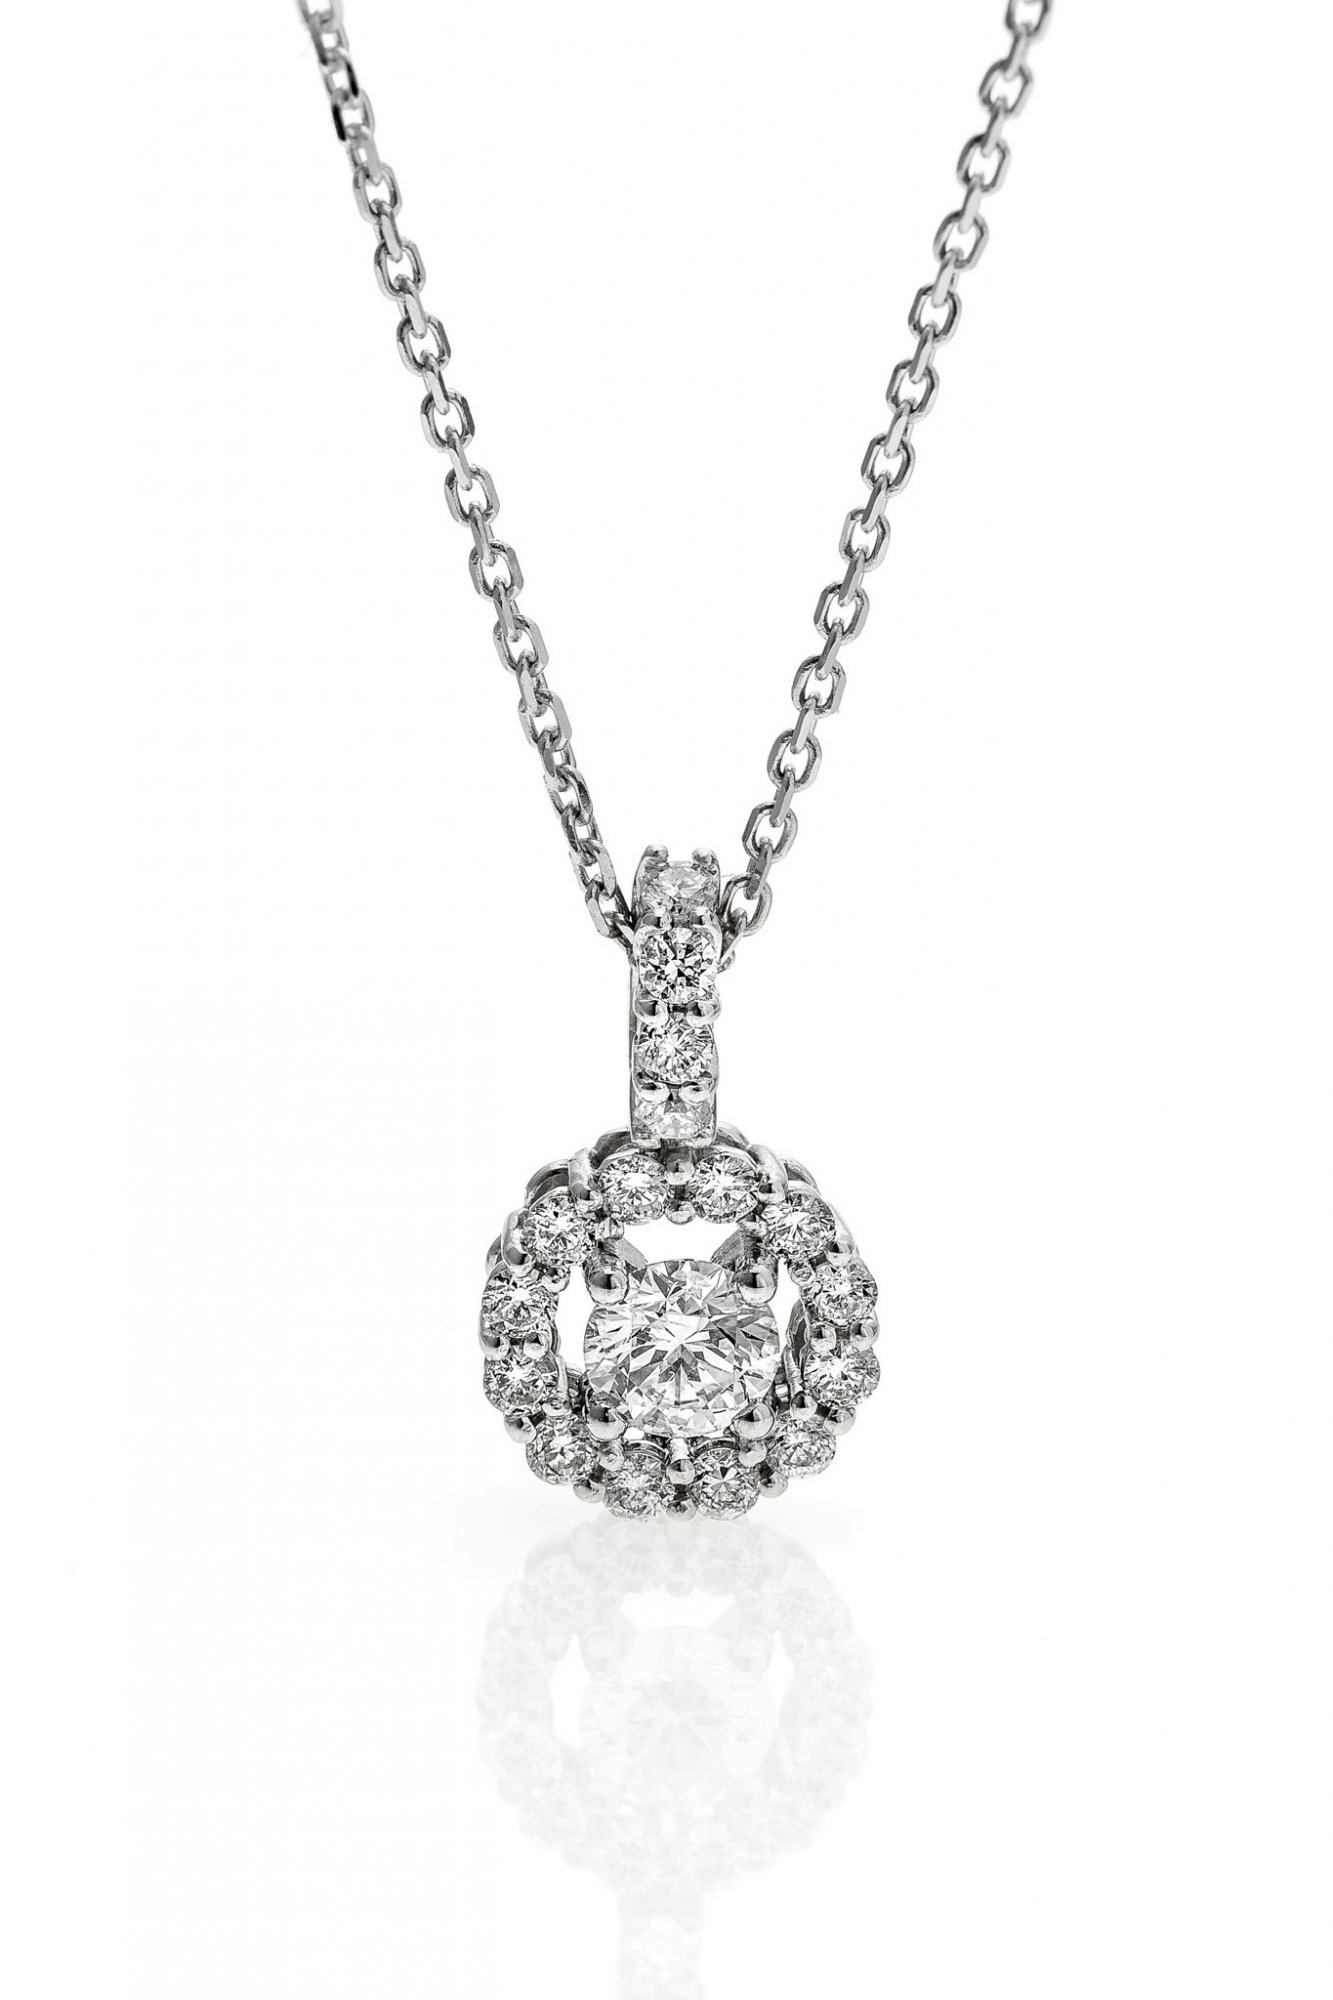 18 KT white gold necklace with round brilliant cut diamonds ct.0.45 + ct.0.14 VS1 F color